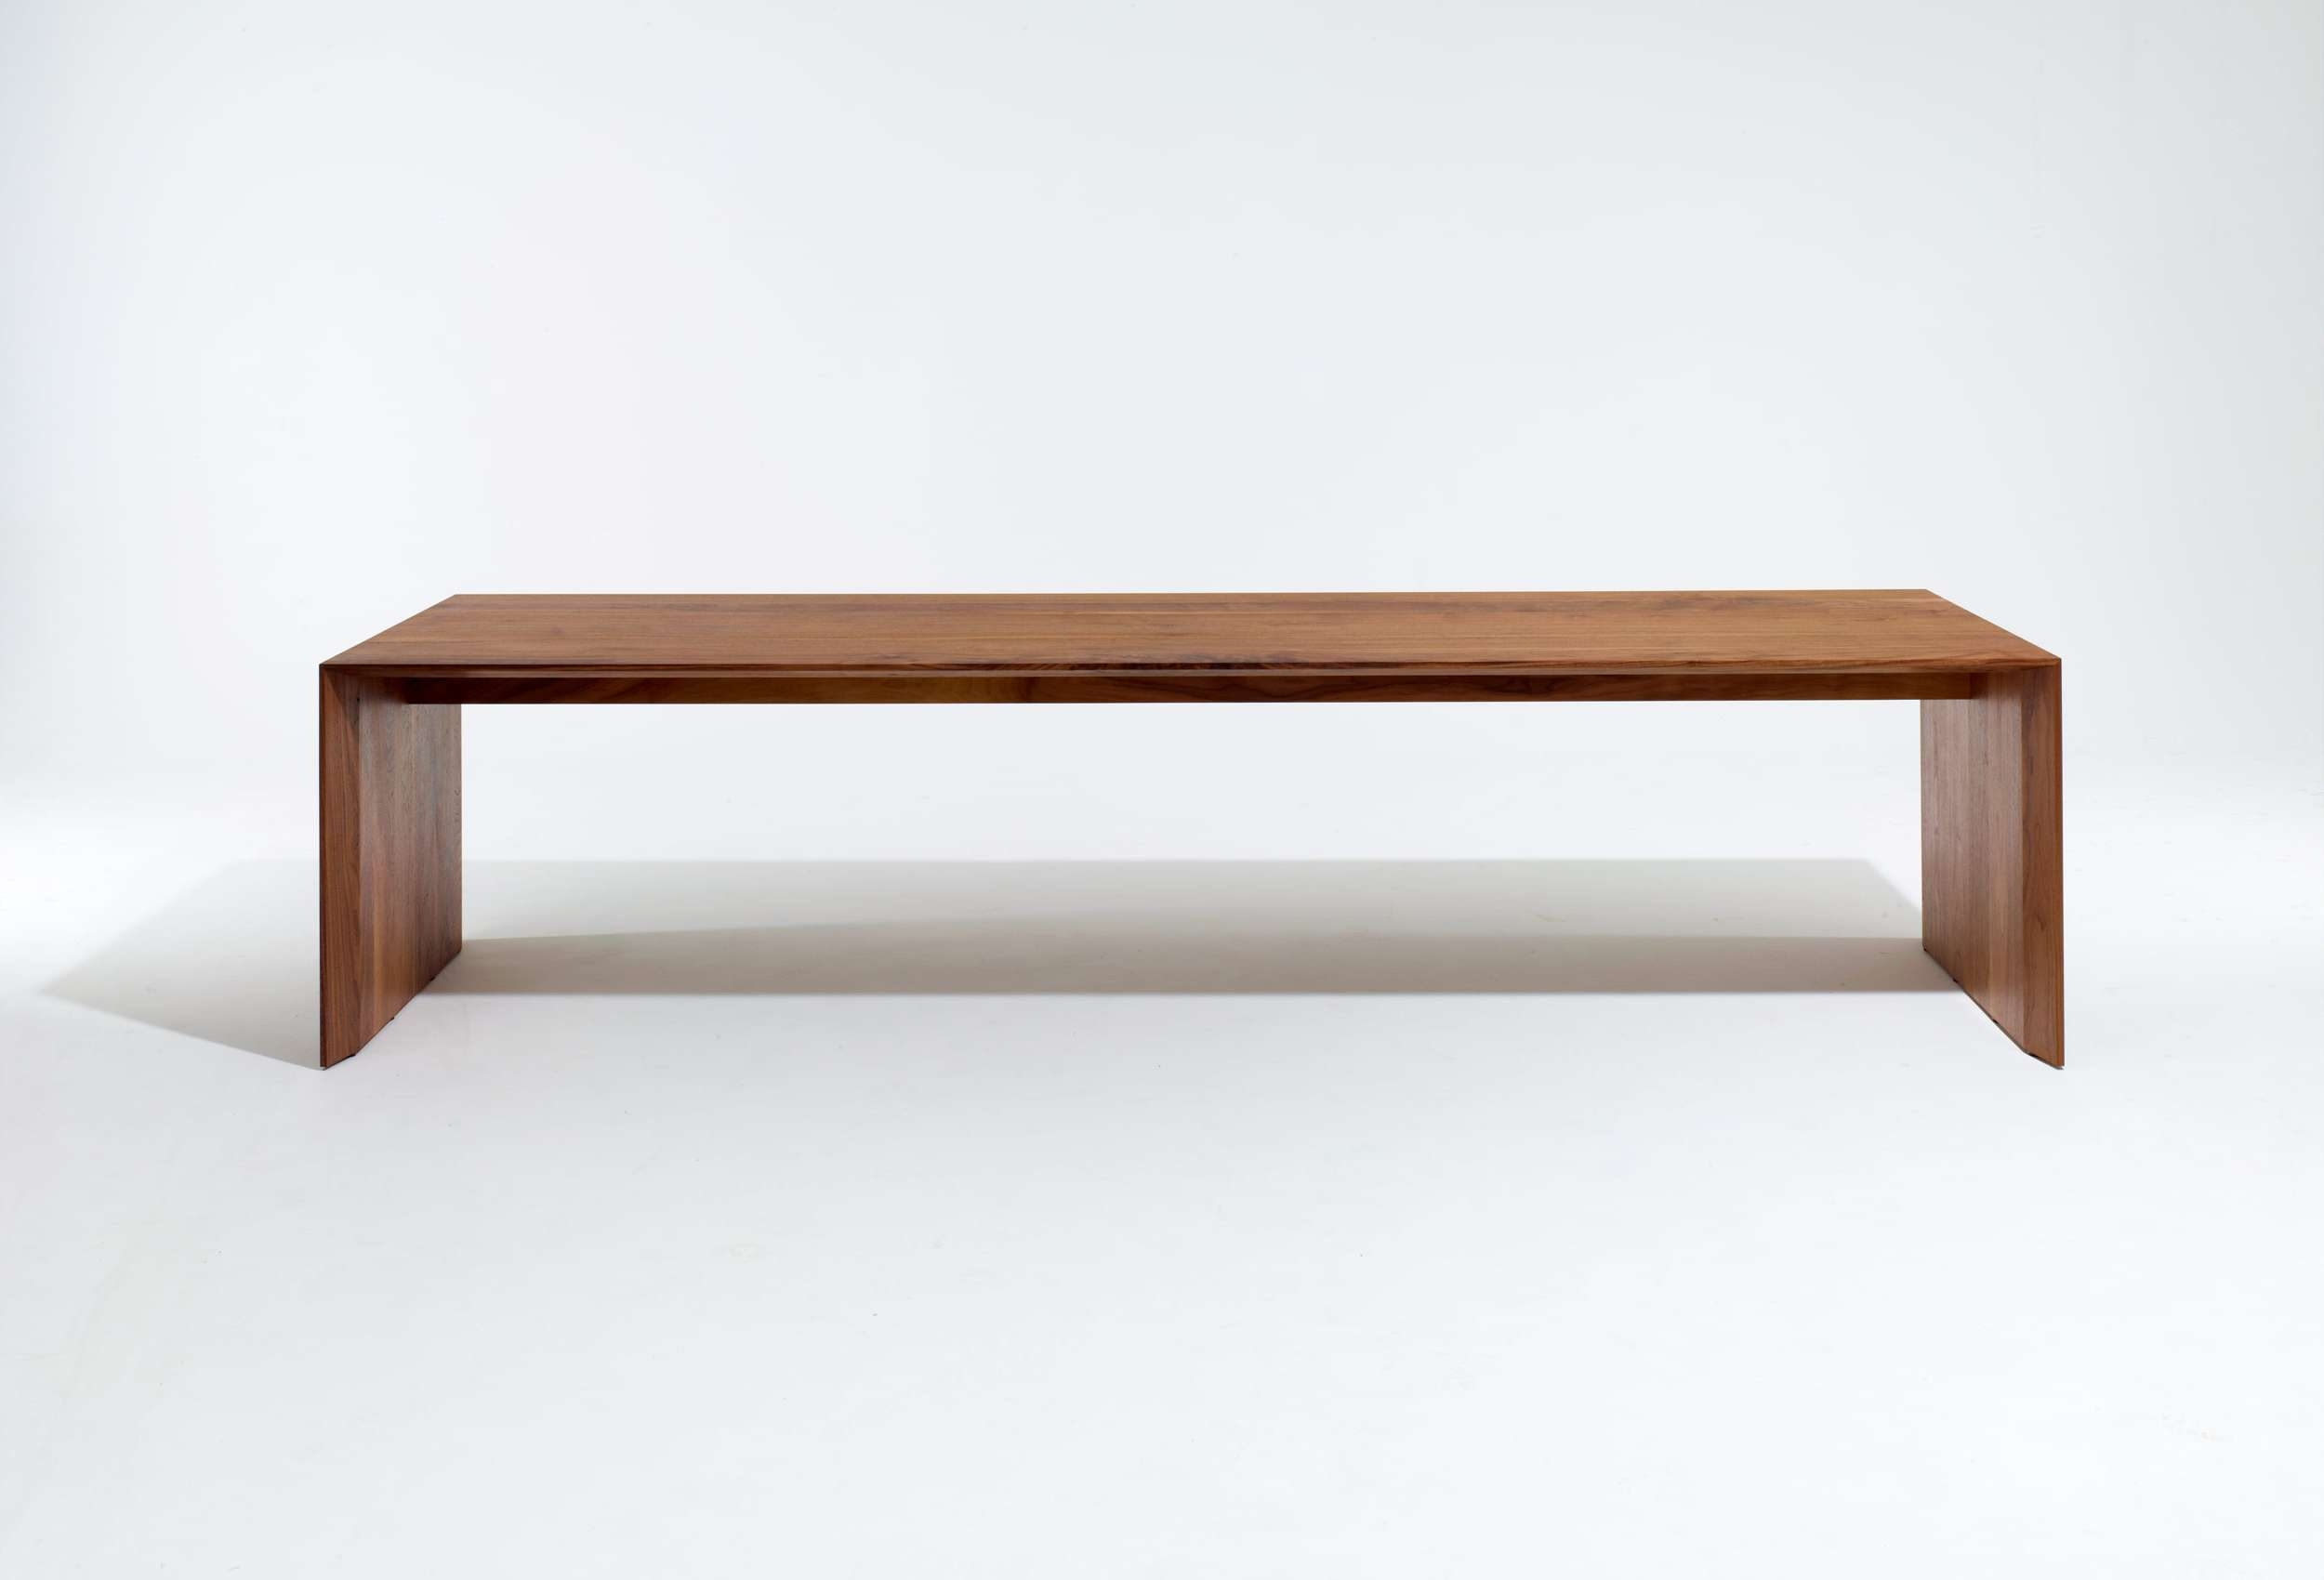 Chiara Ferrari › C Table Throughout Most Popular C Coffee Tables (View 3 of 20)